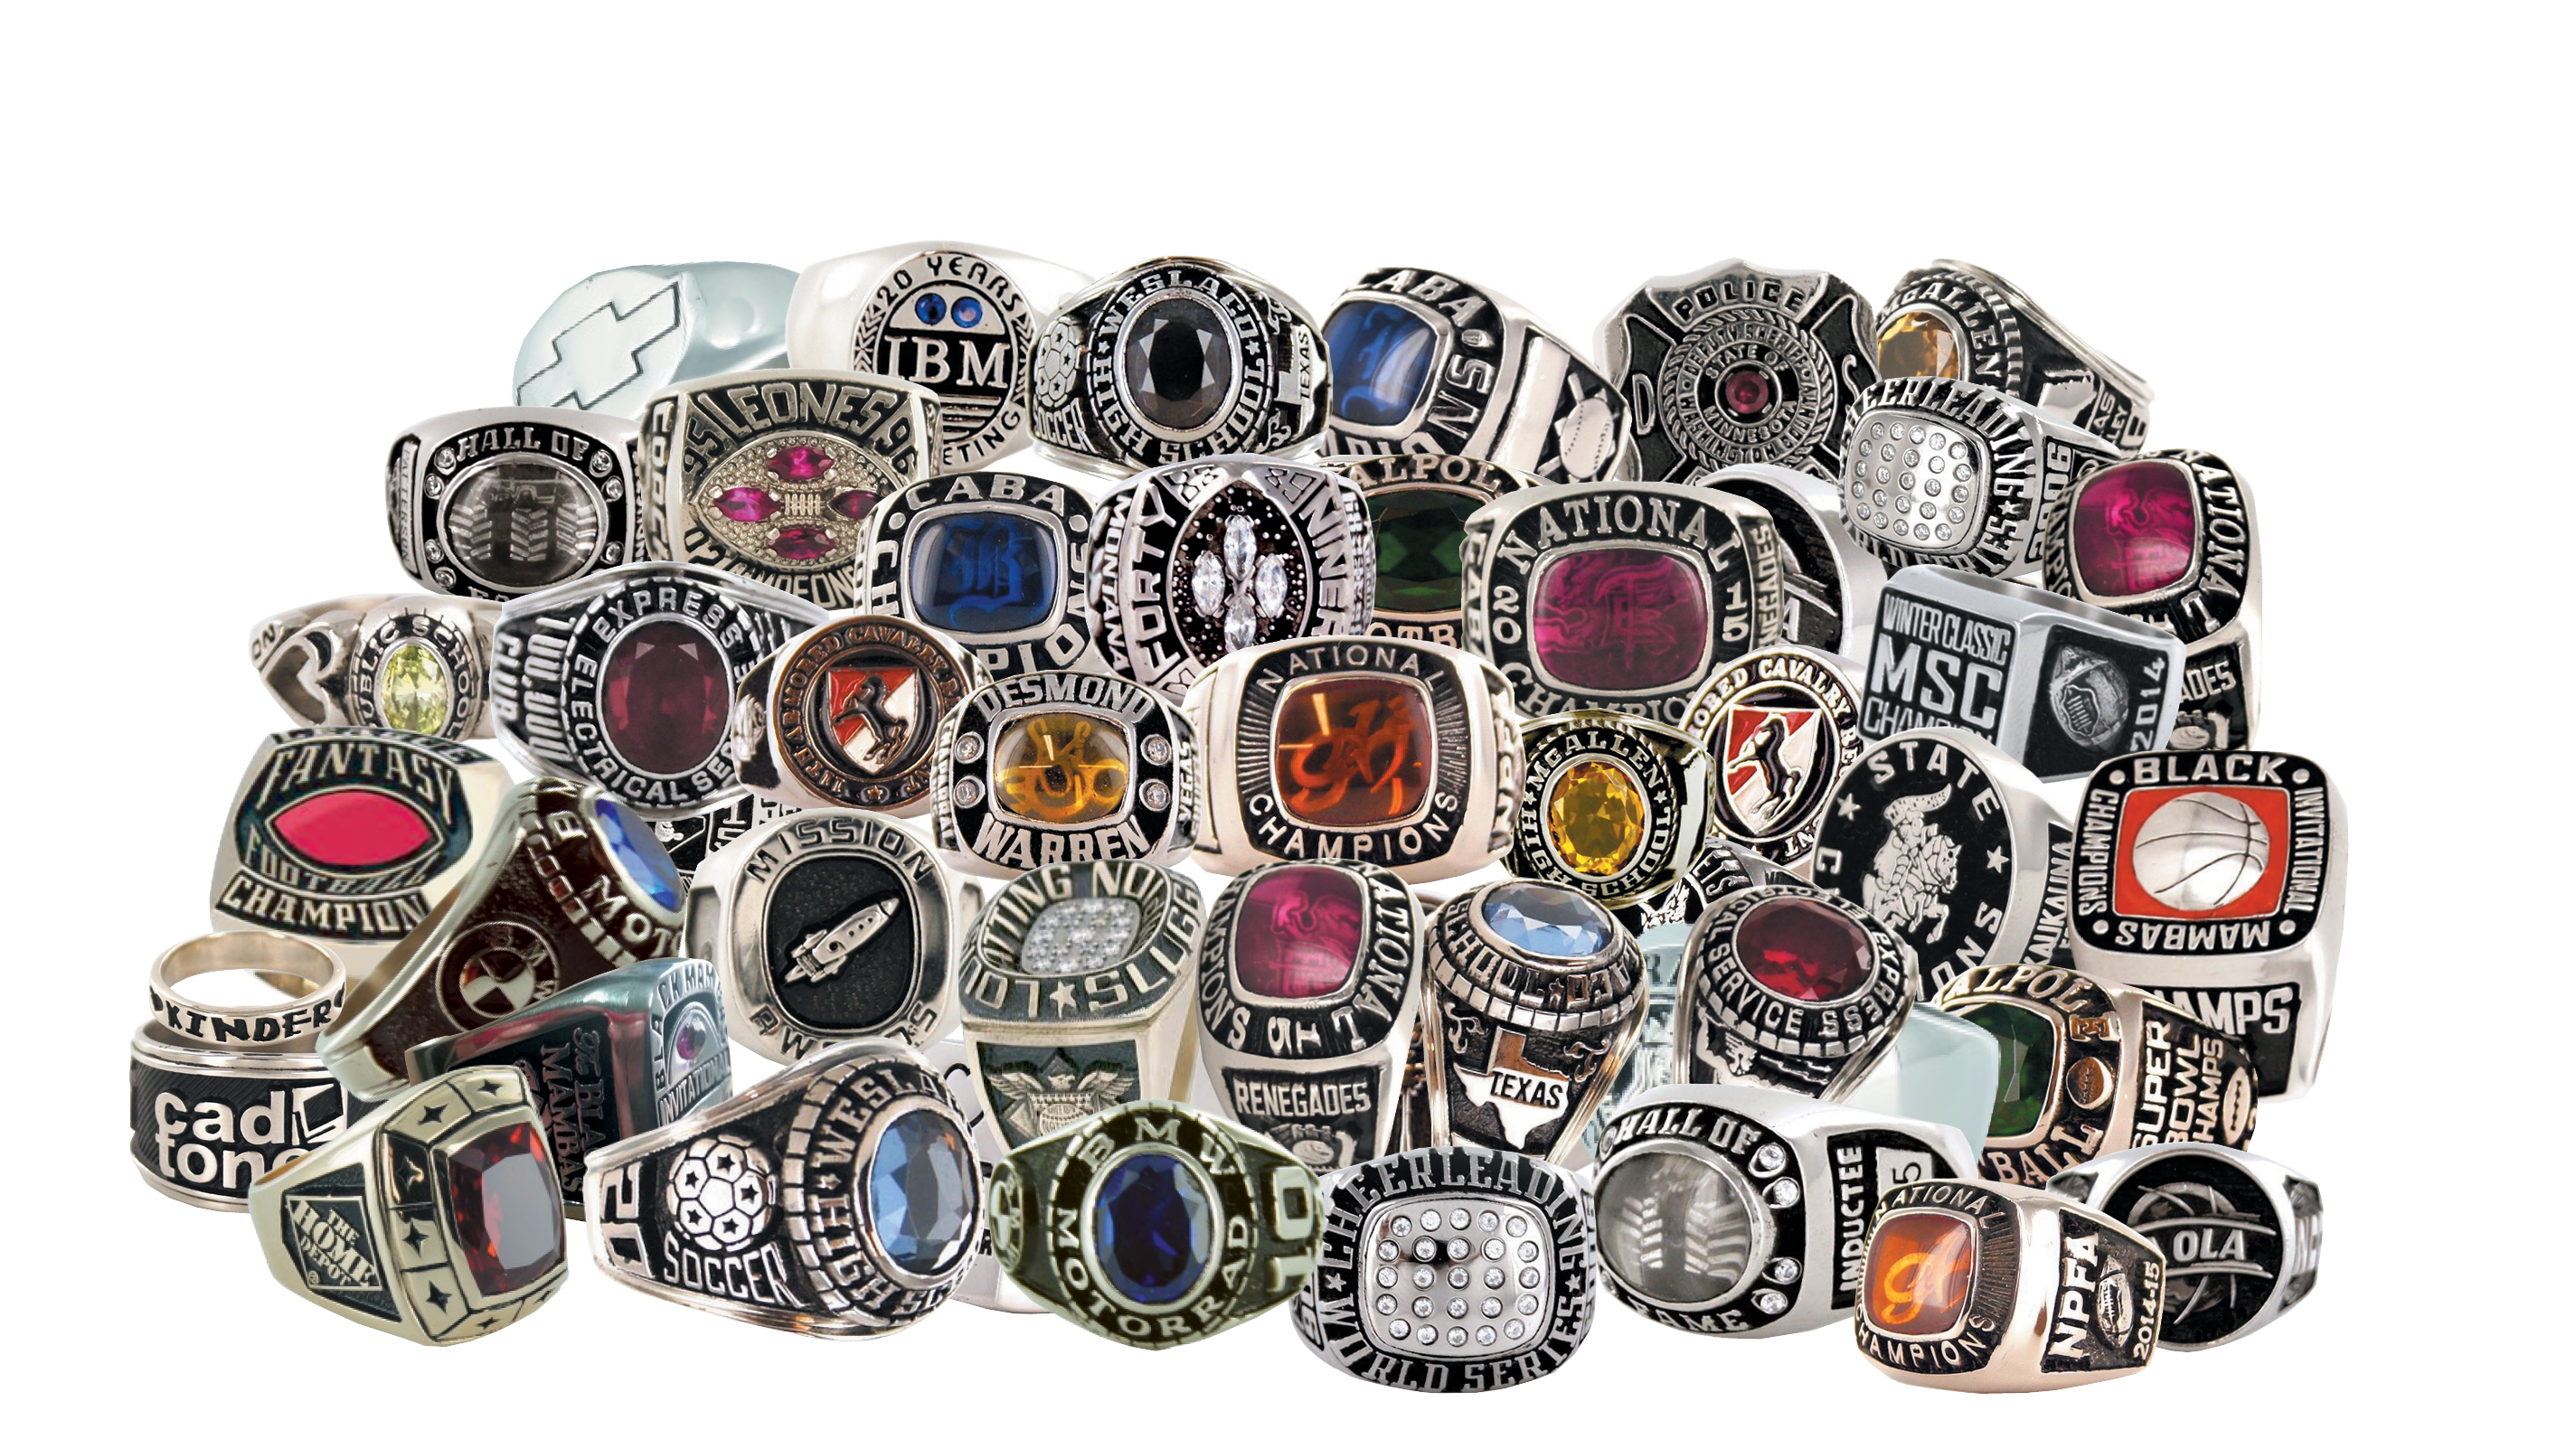 college rings easysitepicture professional school for saint championship mount high grammar academy mary ring